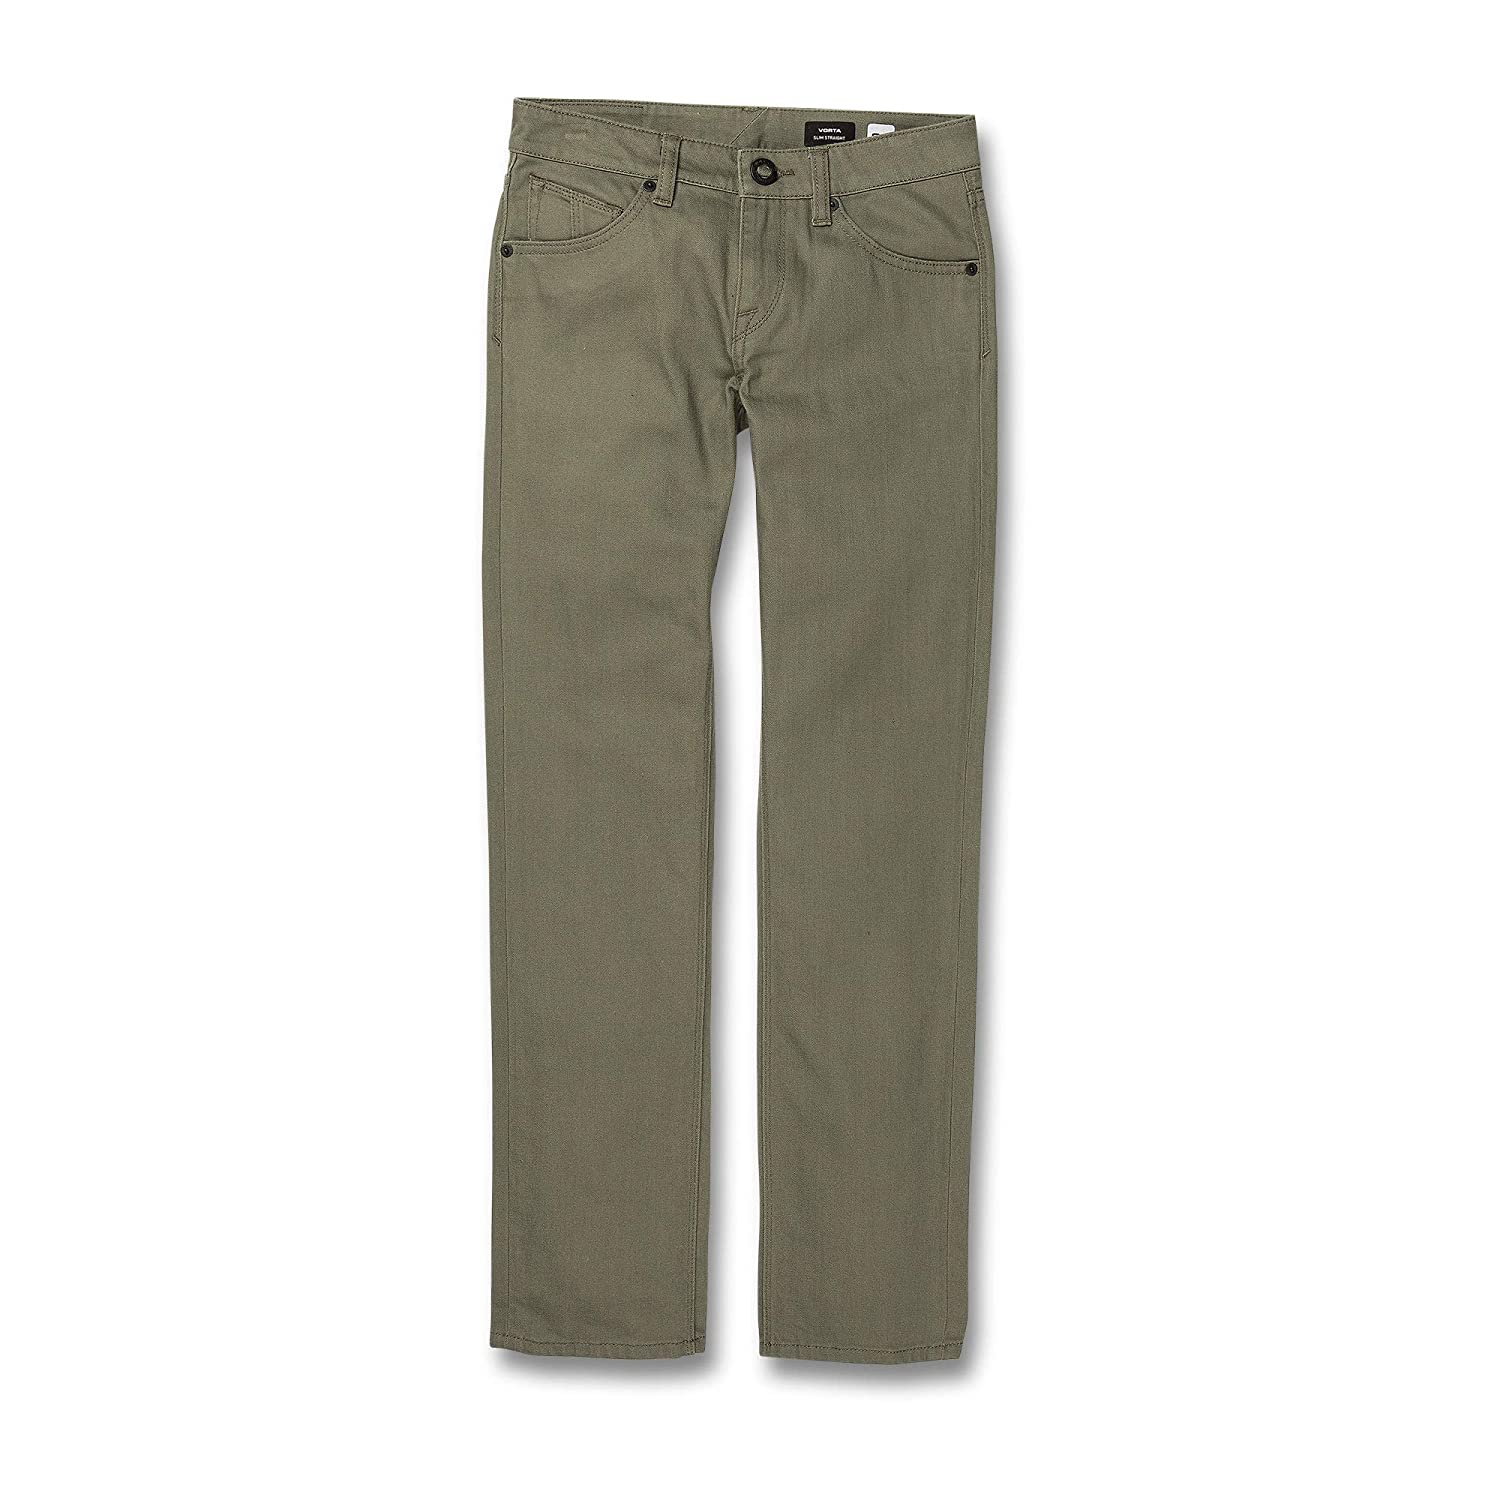 Volcom Big Boys Vorta 5 Pocket Slub Slim Fit Pant